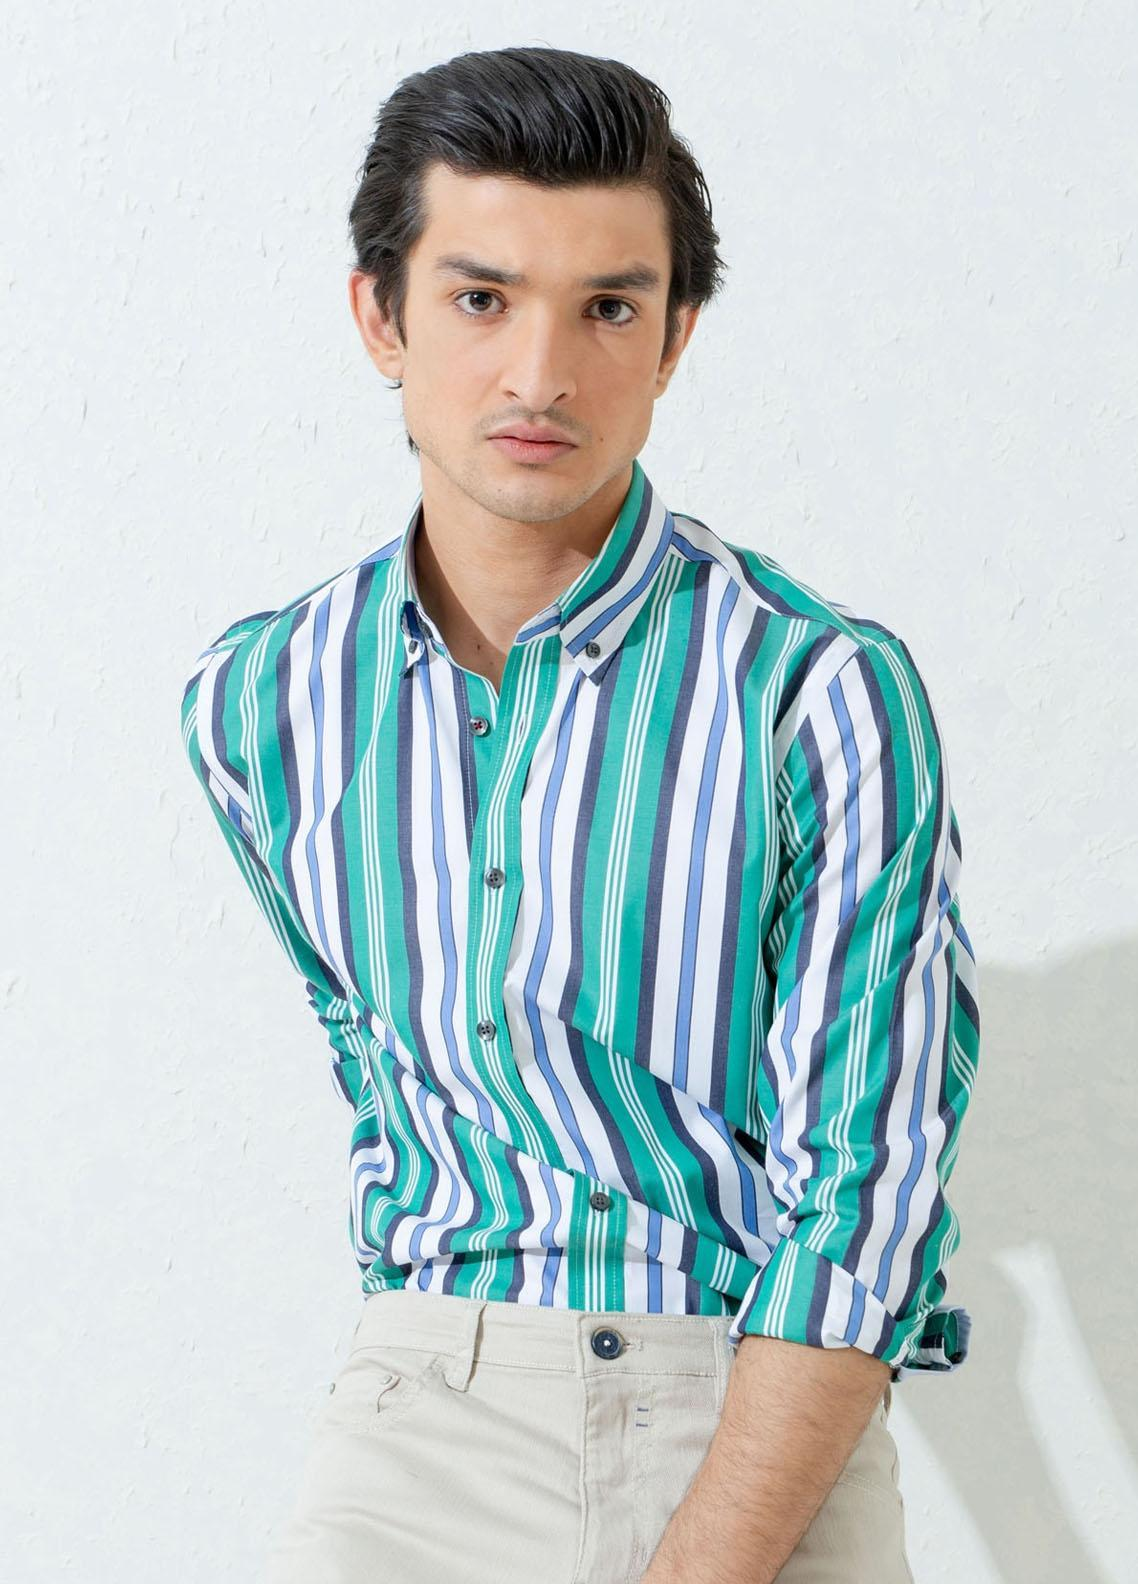 Brumano Cotton Casual Shirts for Men -  Green Bold Striped